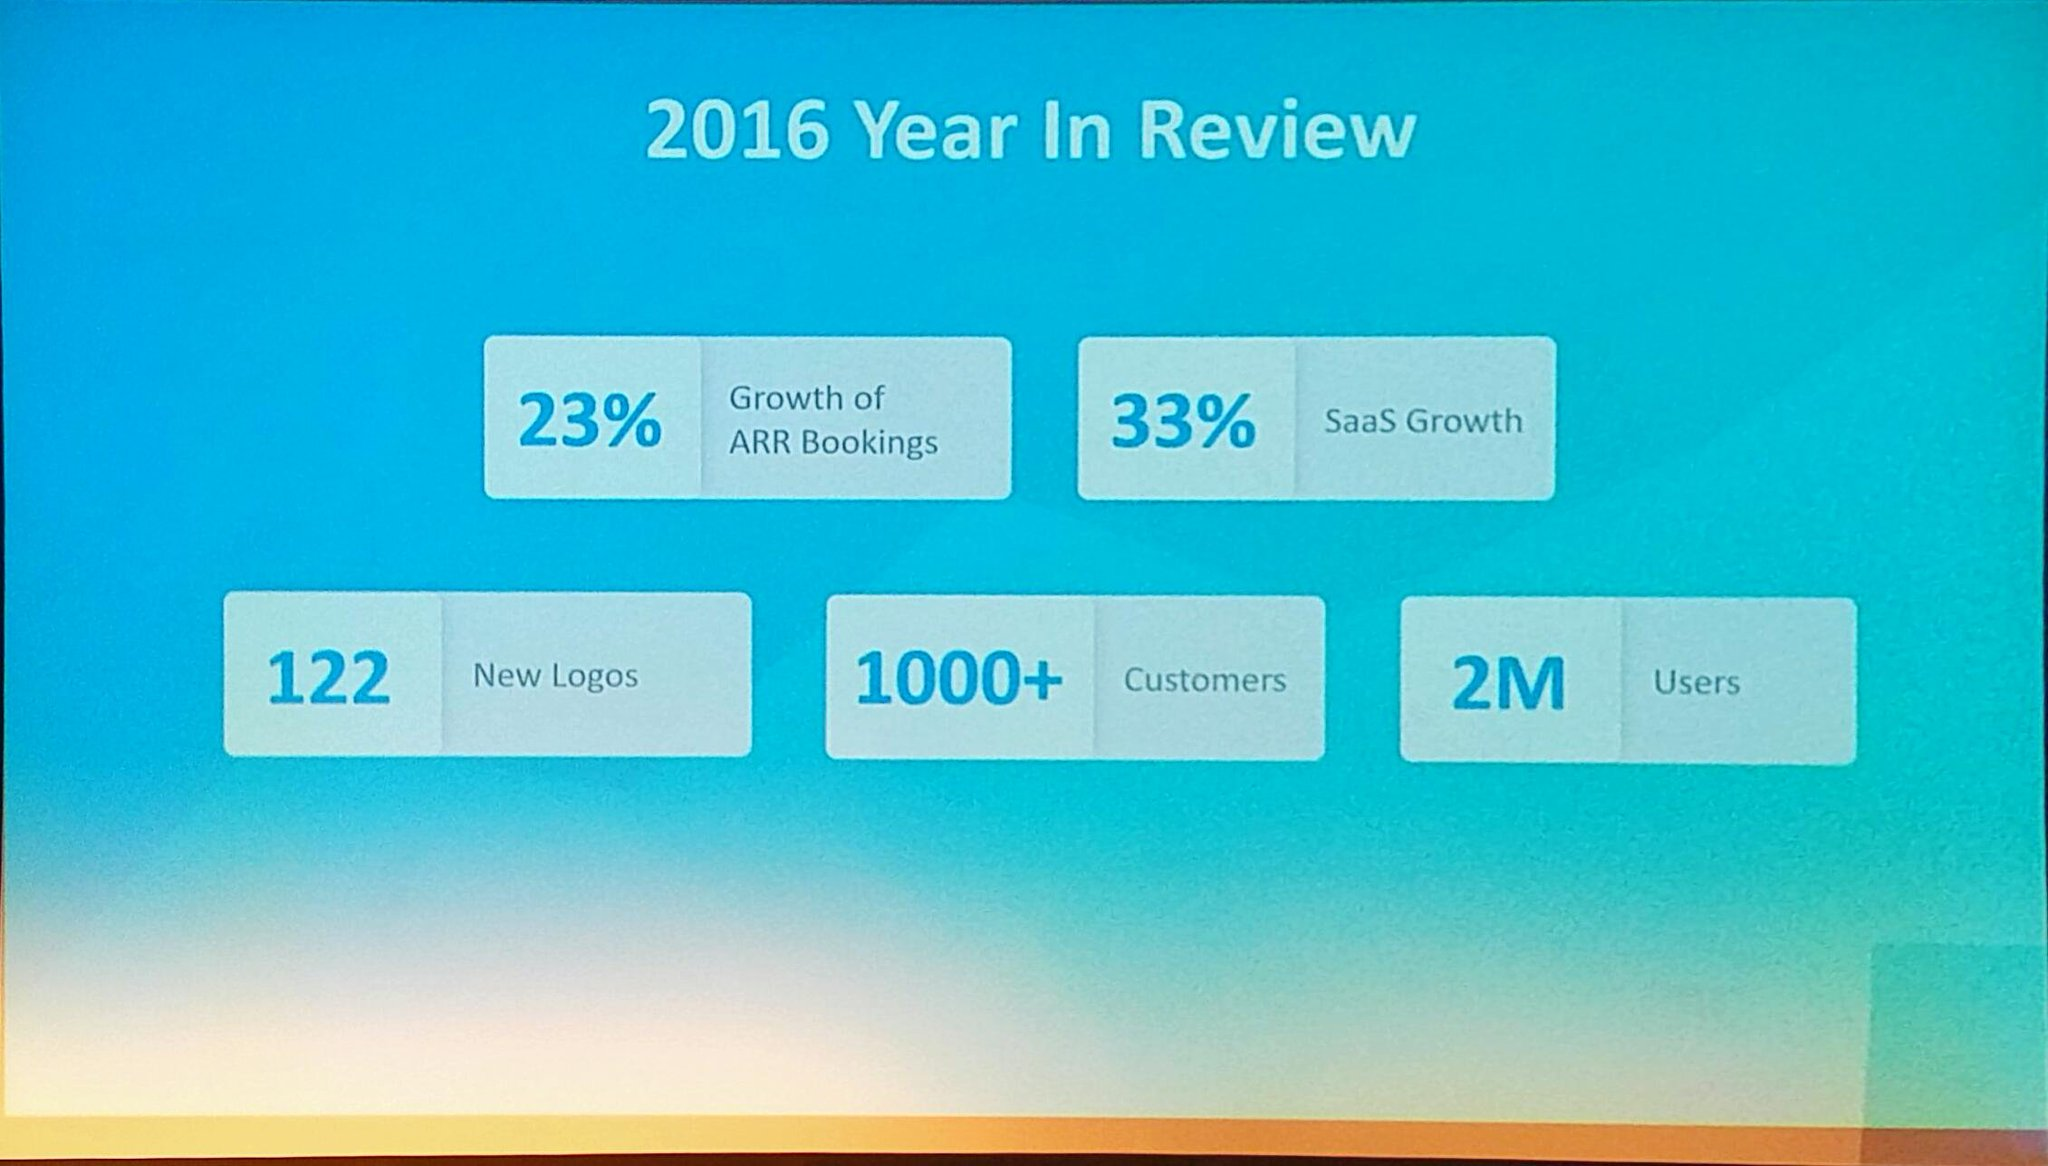 .@WorkForceSW in 2016 - 23%+ ARR - 33%+ #SaaS  - 122 new logos - 1000+ customers  - 2M users  #wfsvision17 https://t.co/rtdOTrrtxO